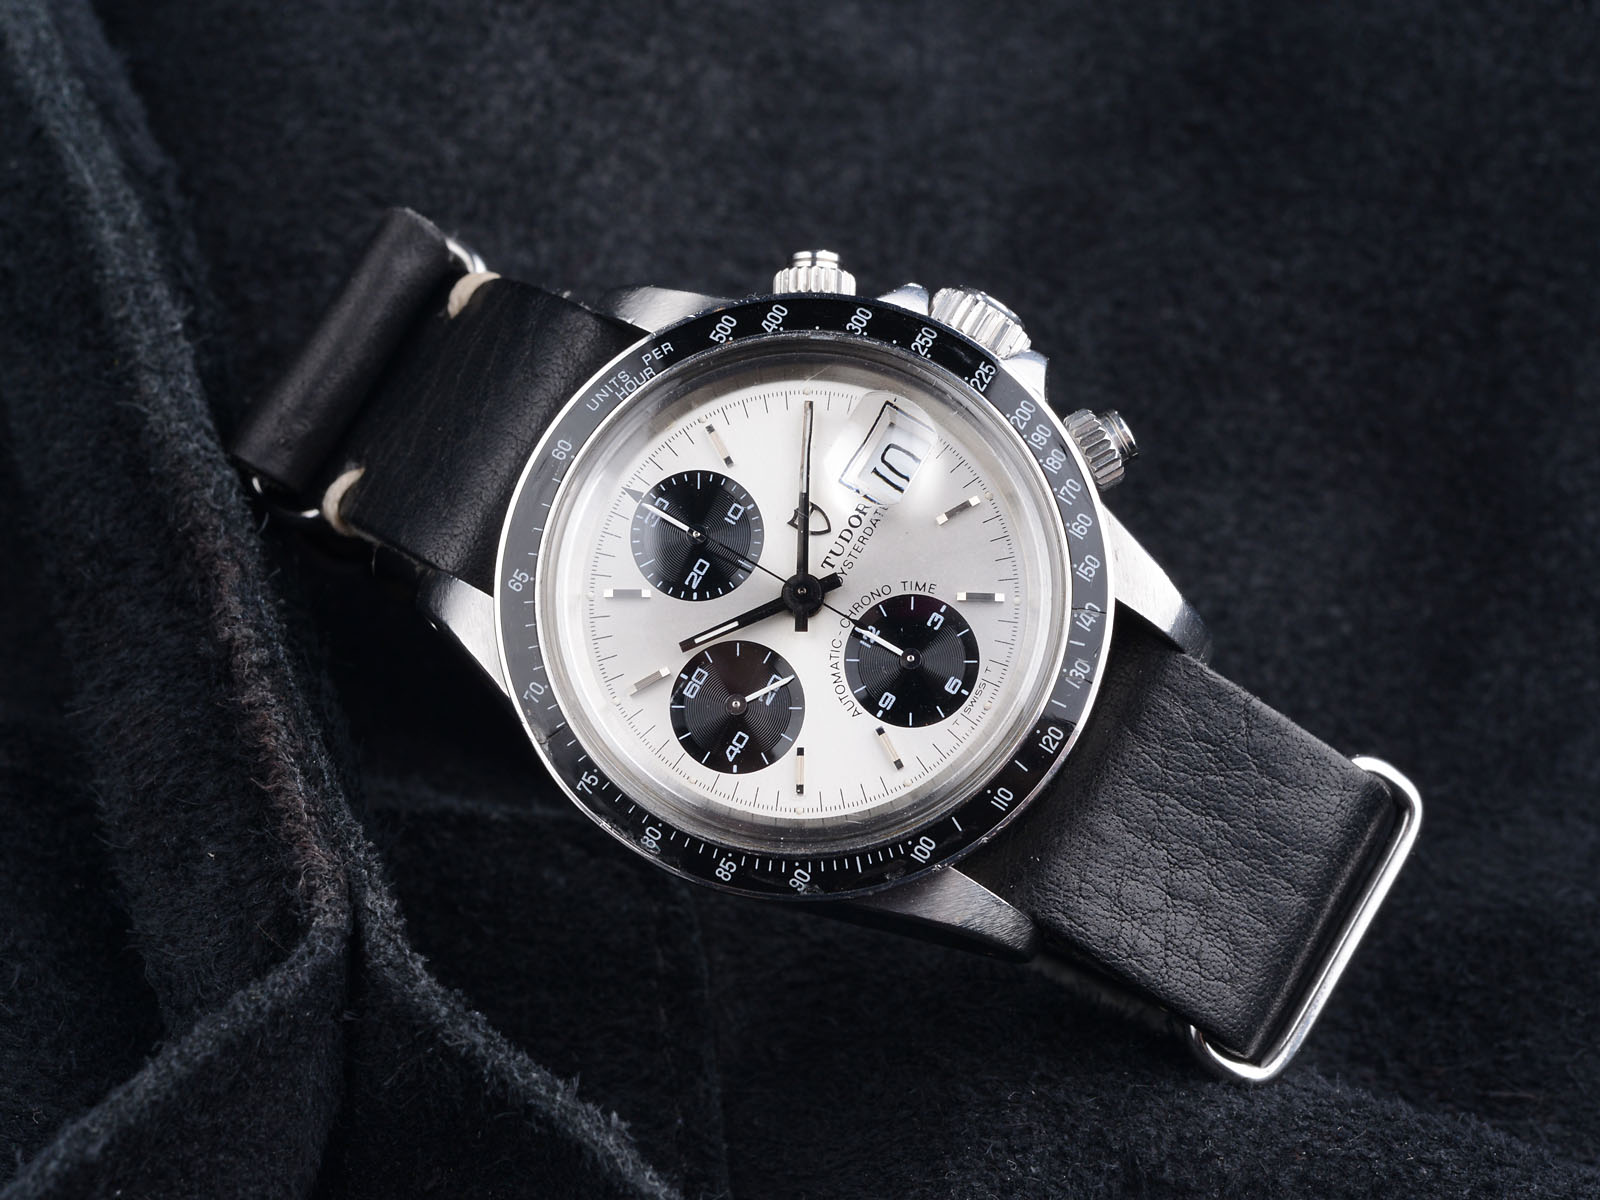 B&S W-121 Tudor 79160 Chrono 6:15 18